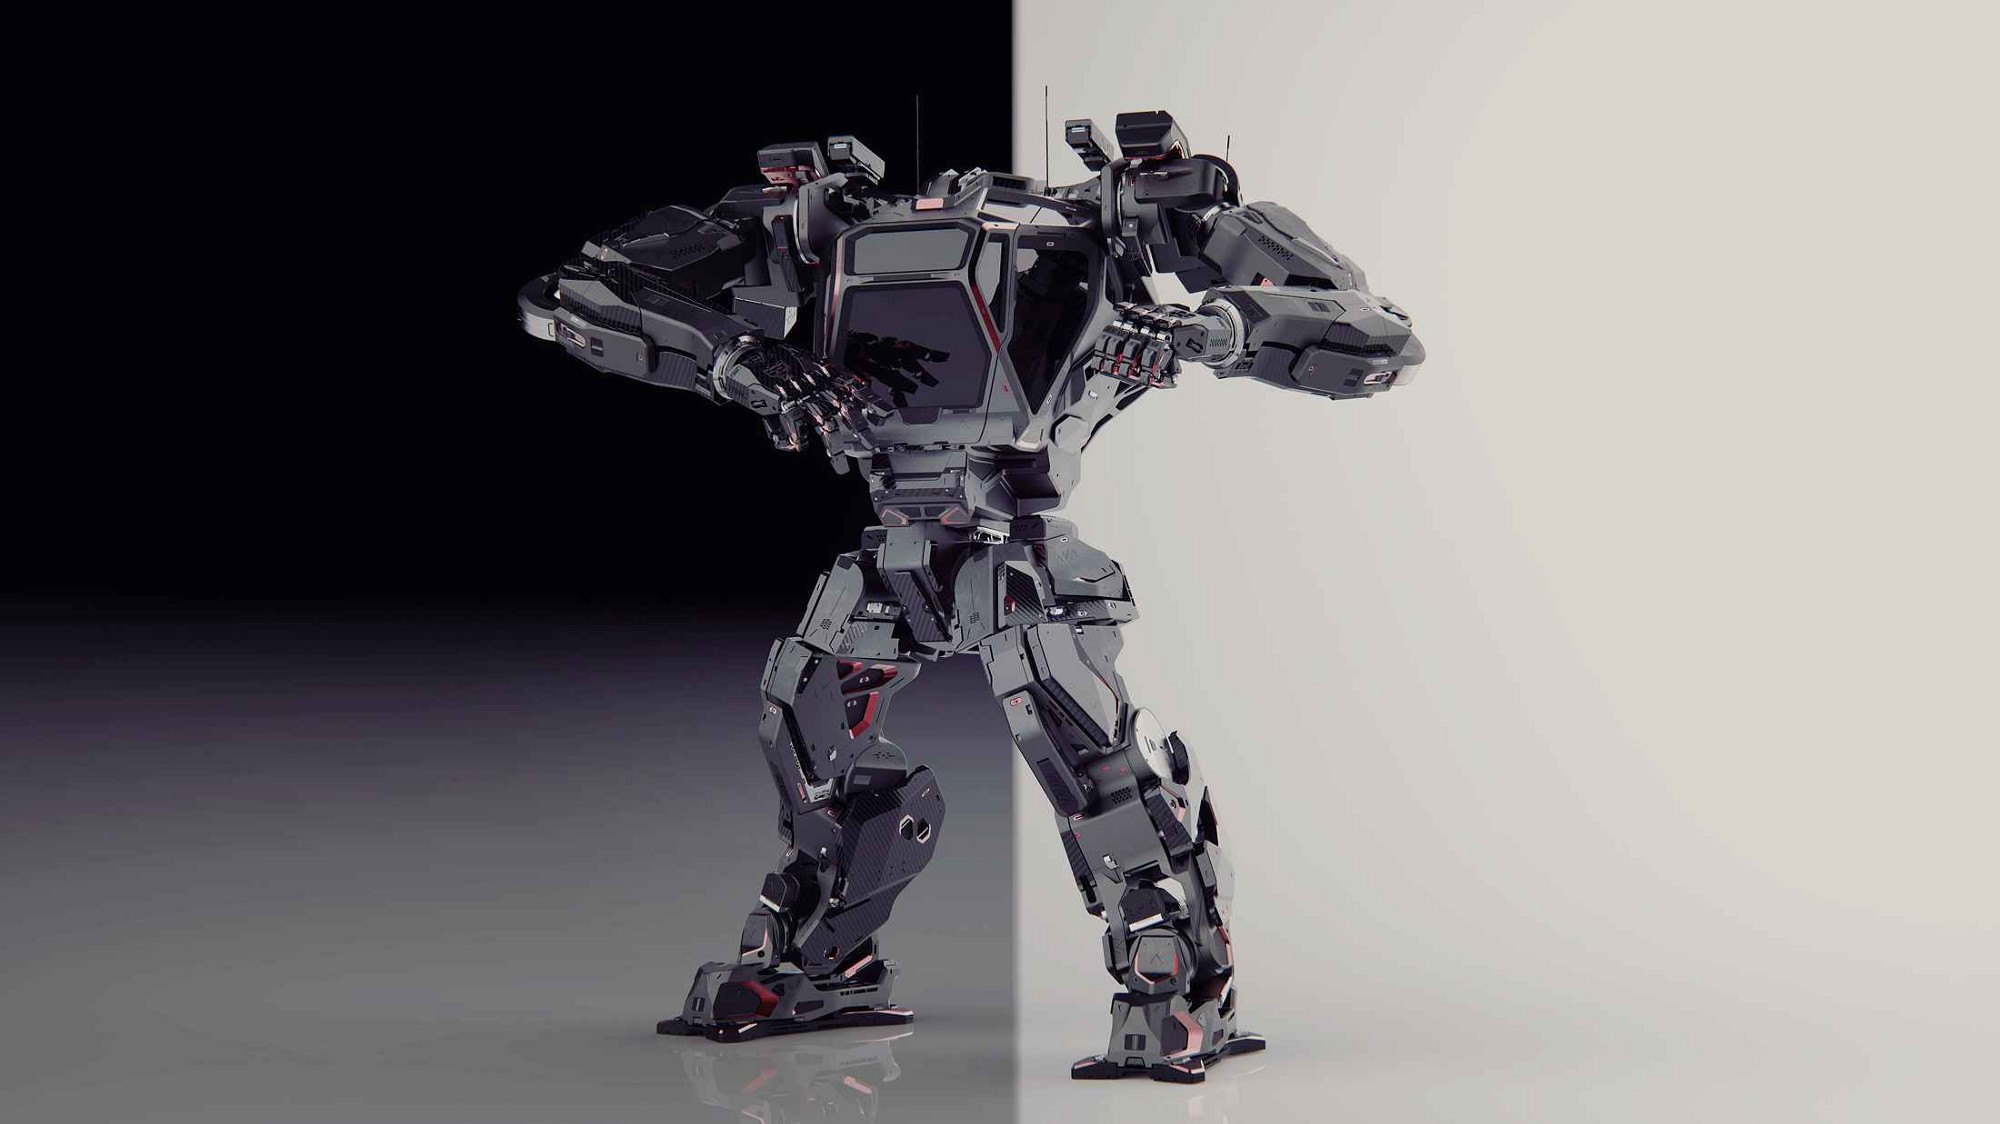 The First Cyber Trooper Giant Manned Robot Method 2 Walks Like A Human